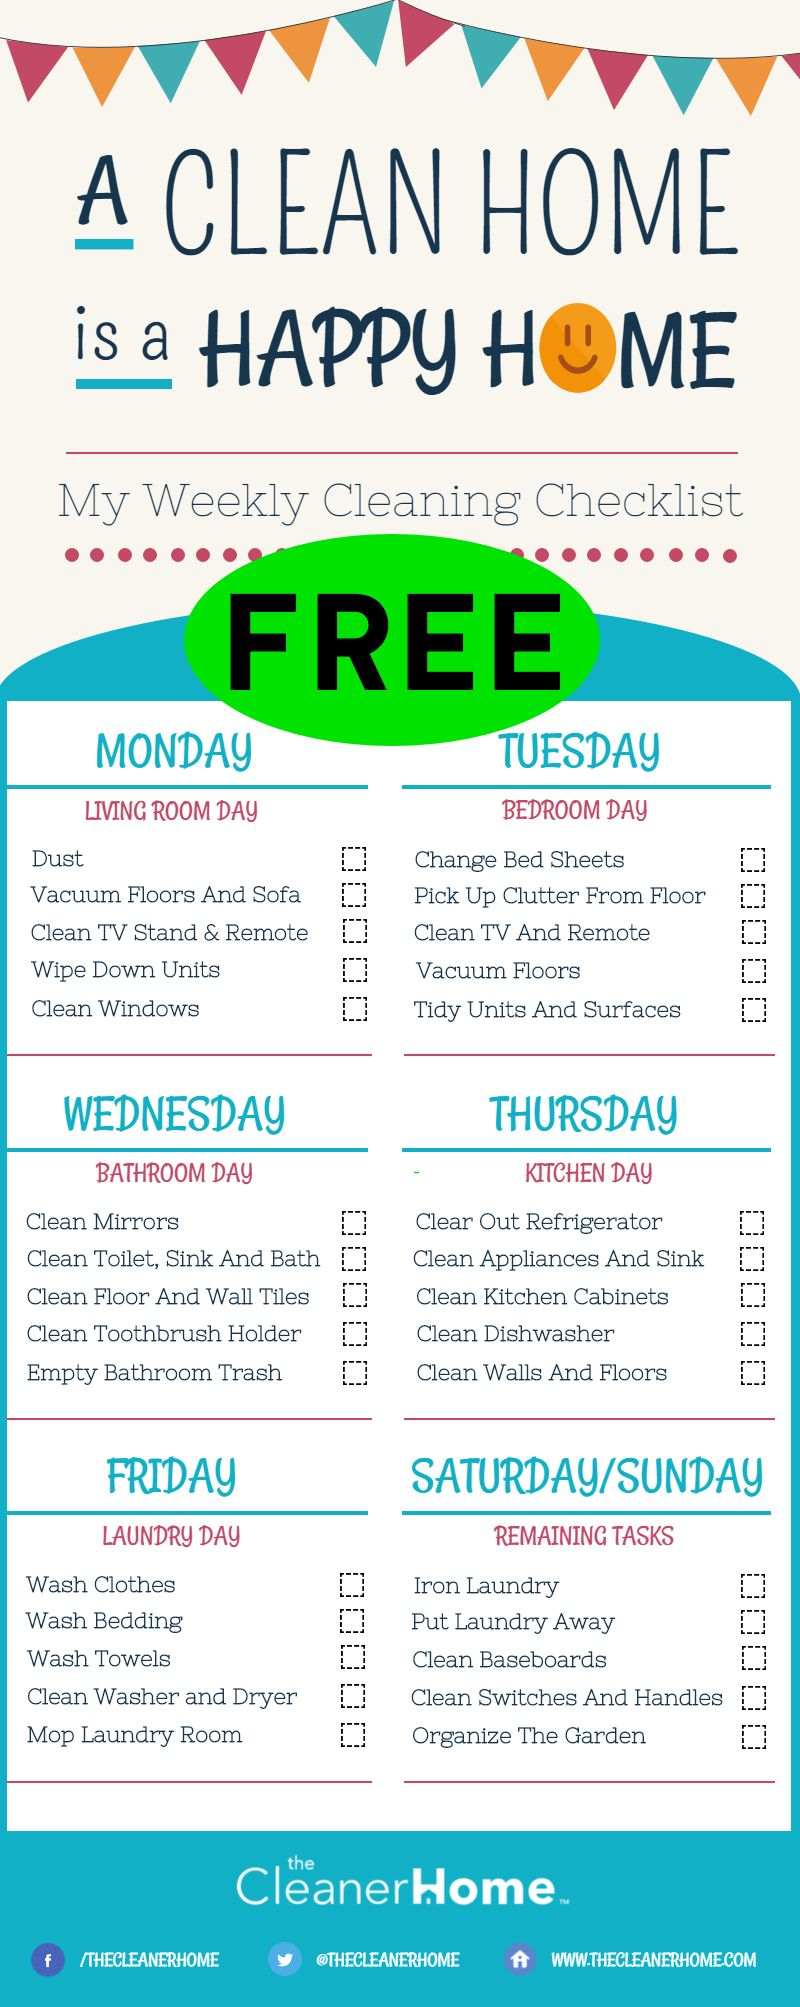 FREE Printable Weekly Cleaning Checklist!